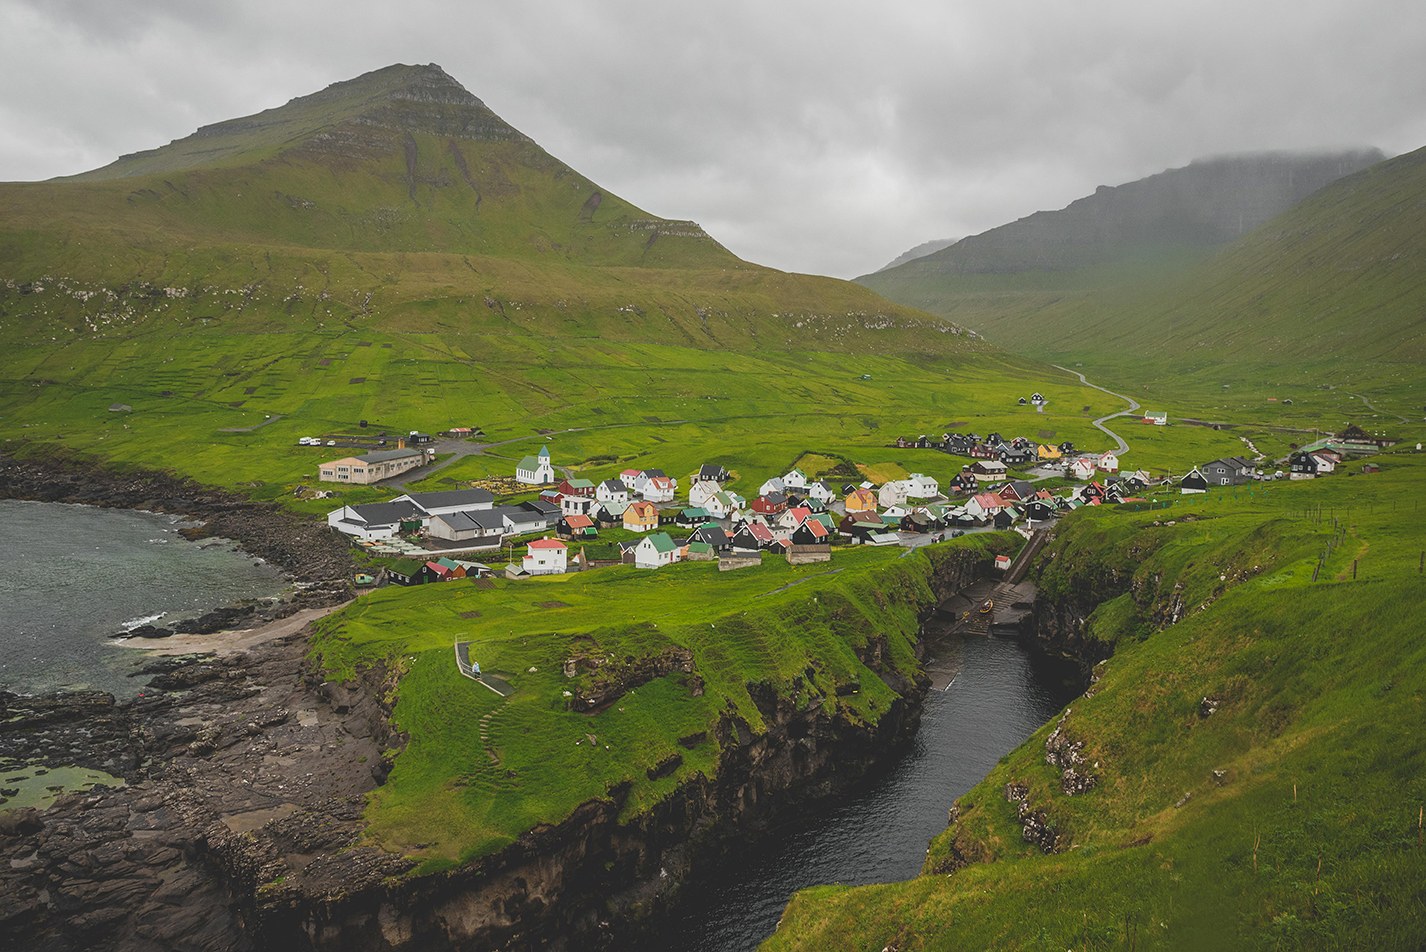 FaroeIslands_Day2_23-6-17_TAL-200.jpg